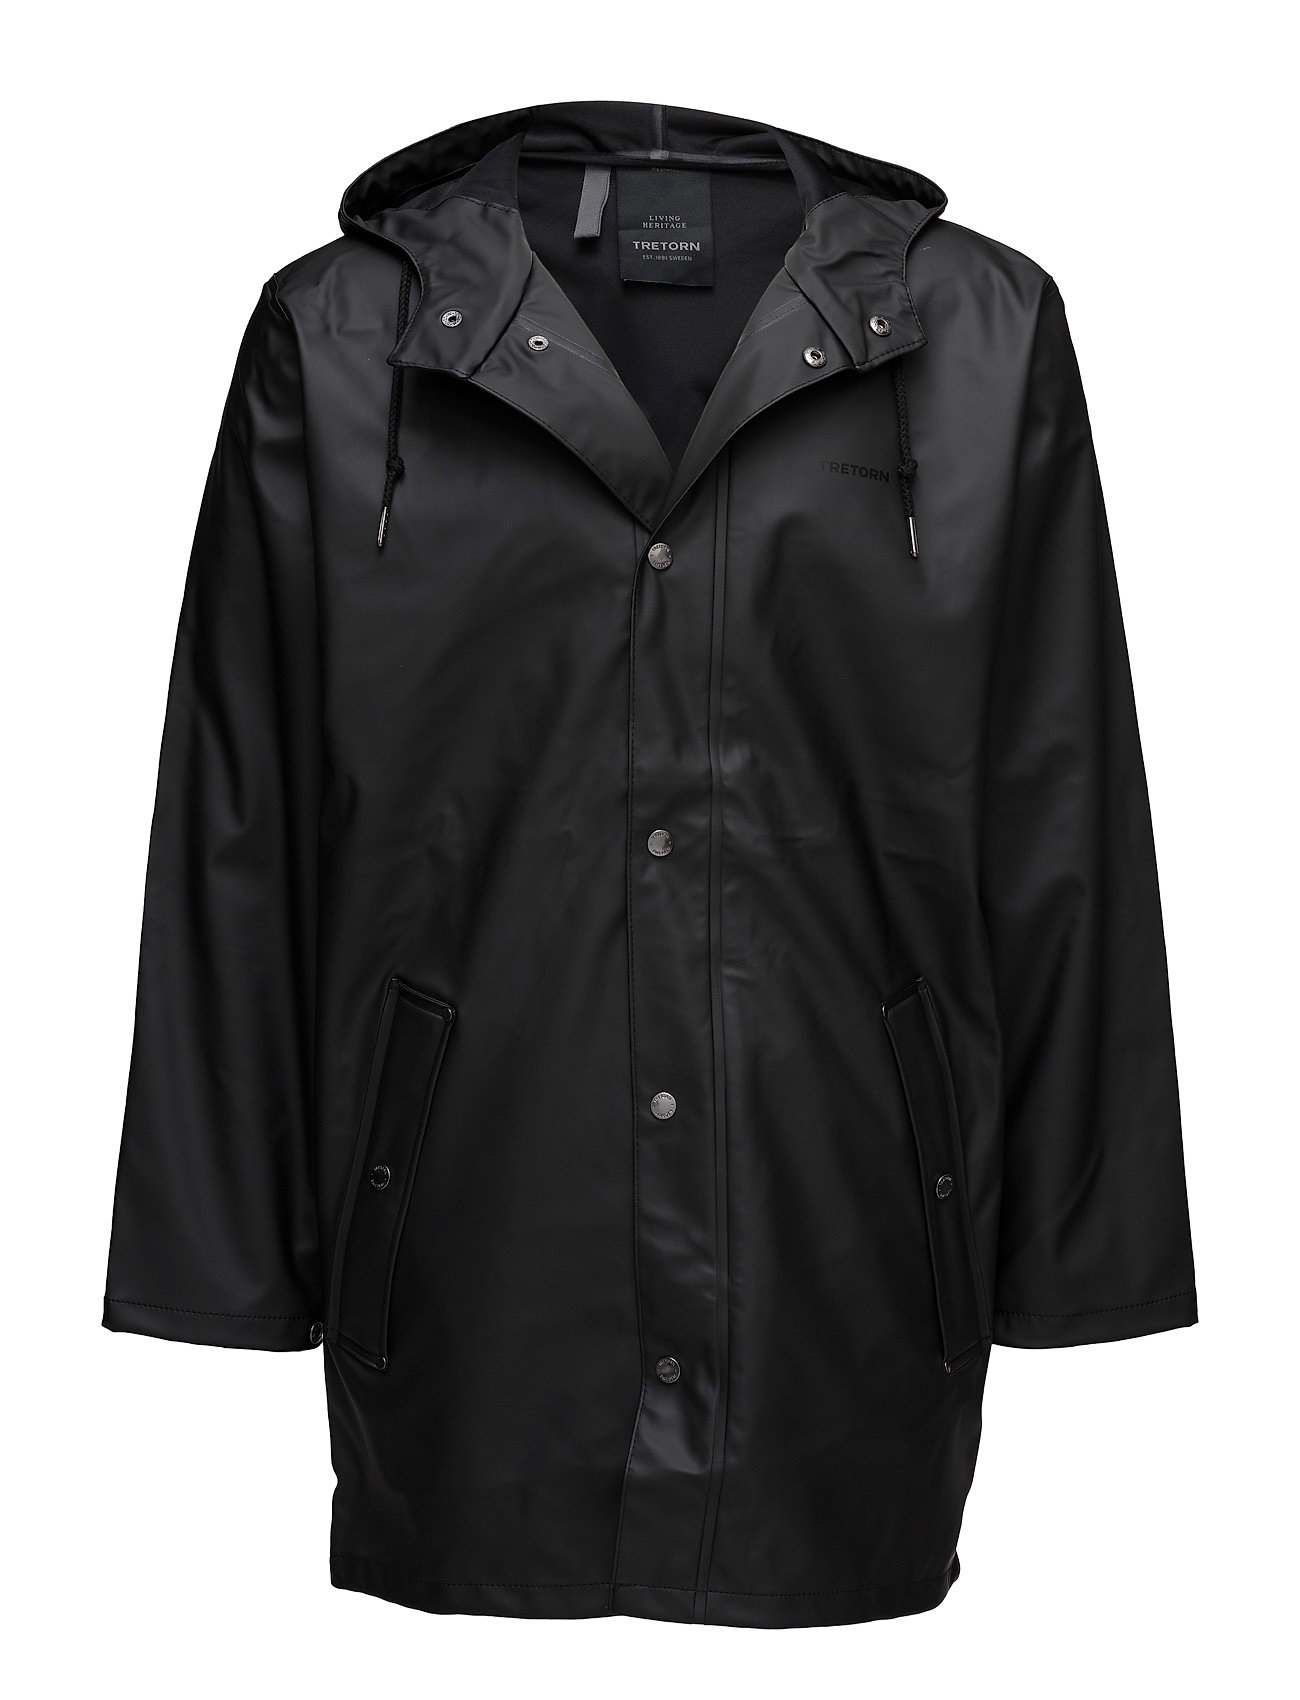 Tretorn WINGS PLUS RAINJACKET - BLACK